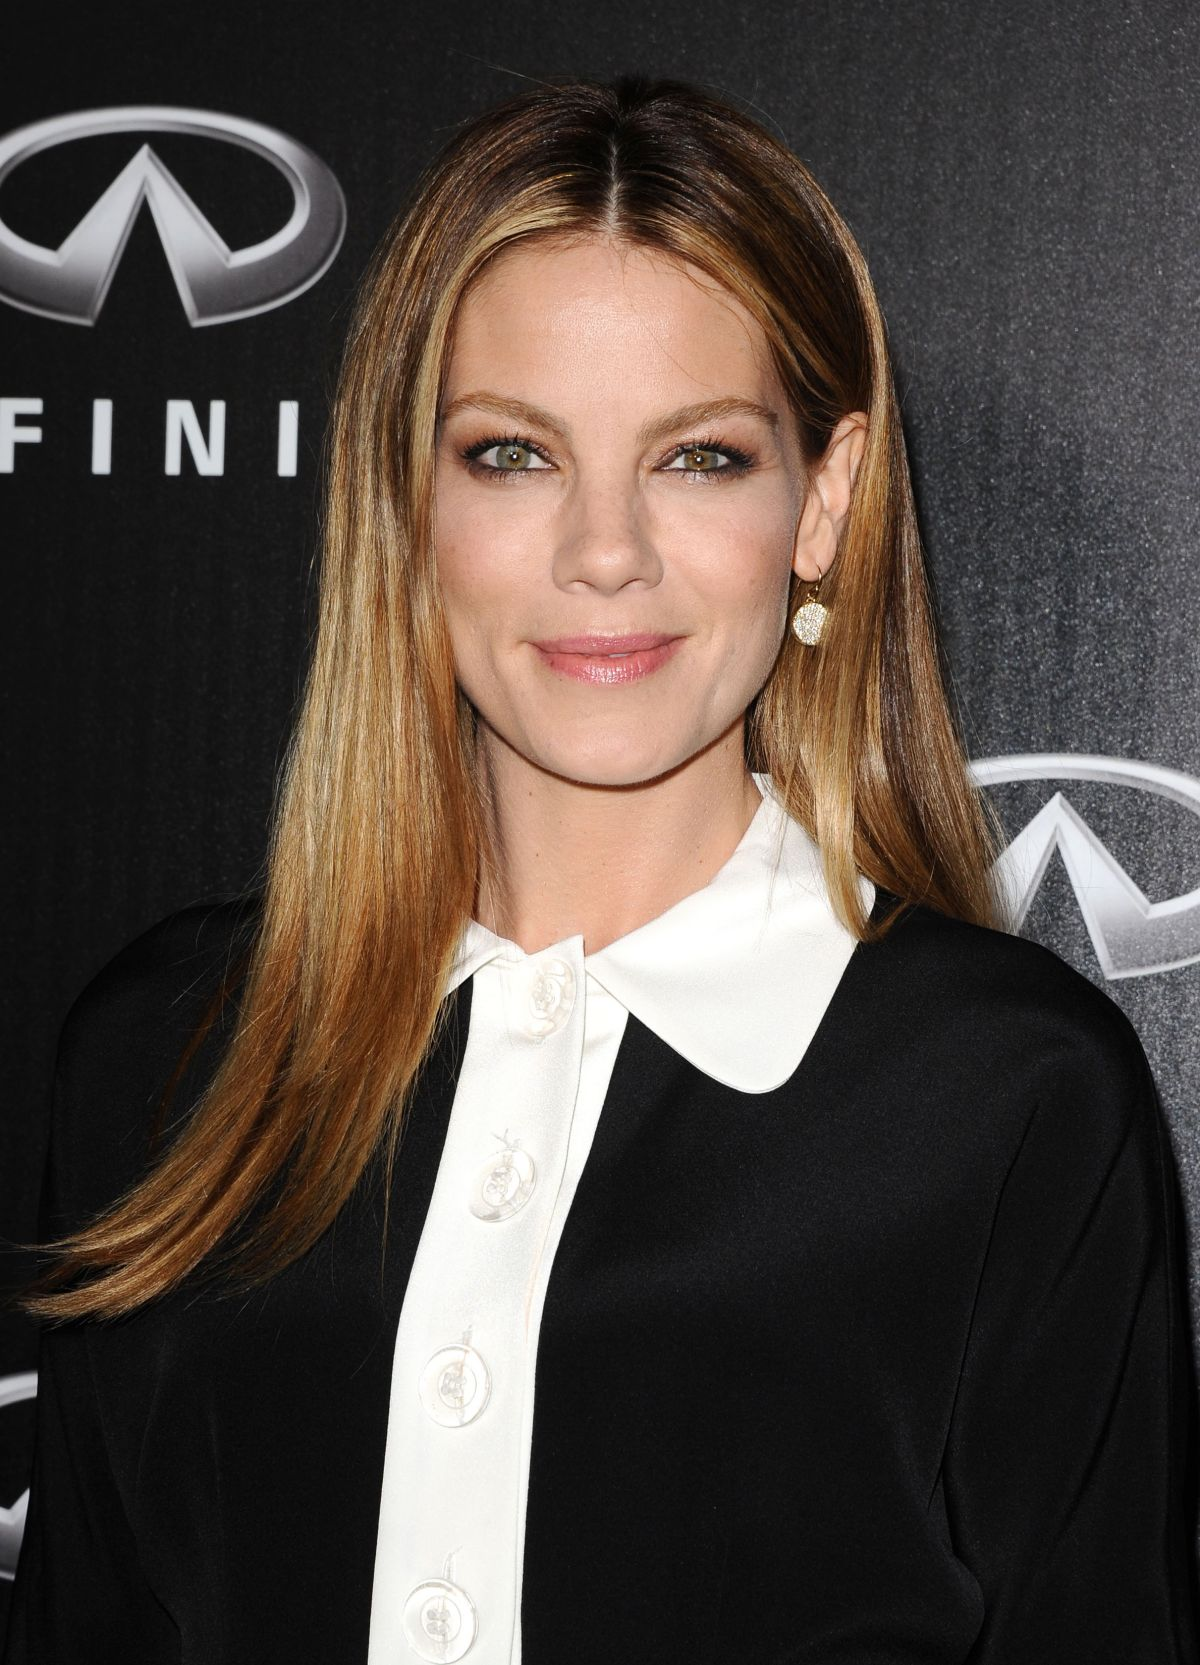 MICHELLE MONAGHAN at Infiniti of Beverly Hills Opening